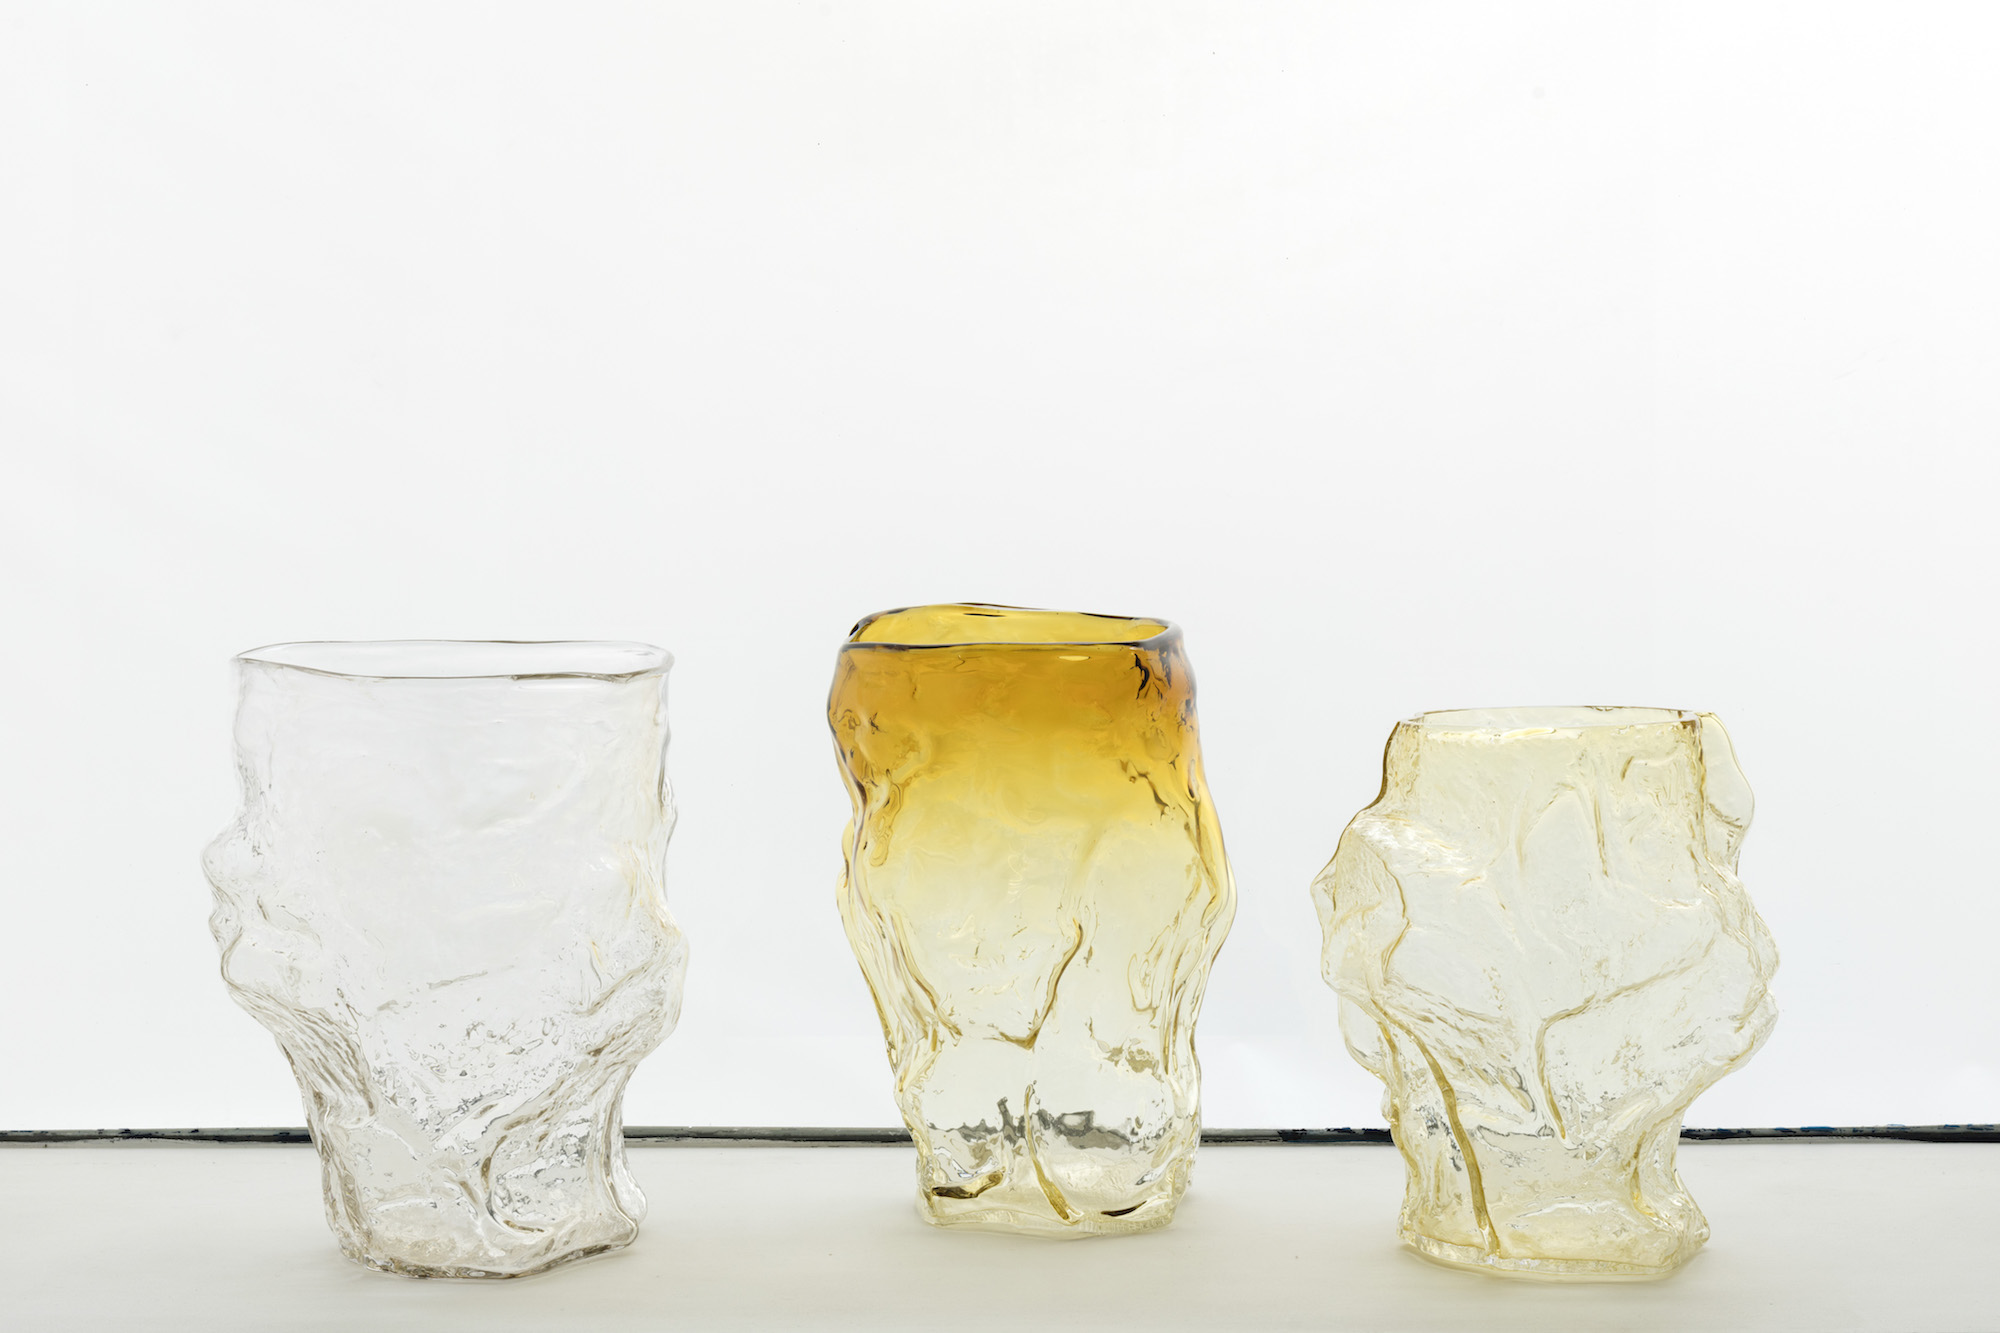 Glass Vase - GlassEach Unique, ≃ 38 x 33 x 33 cm2017Edition of 12Price upon request